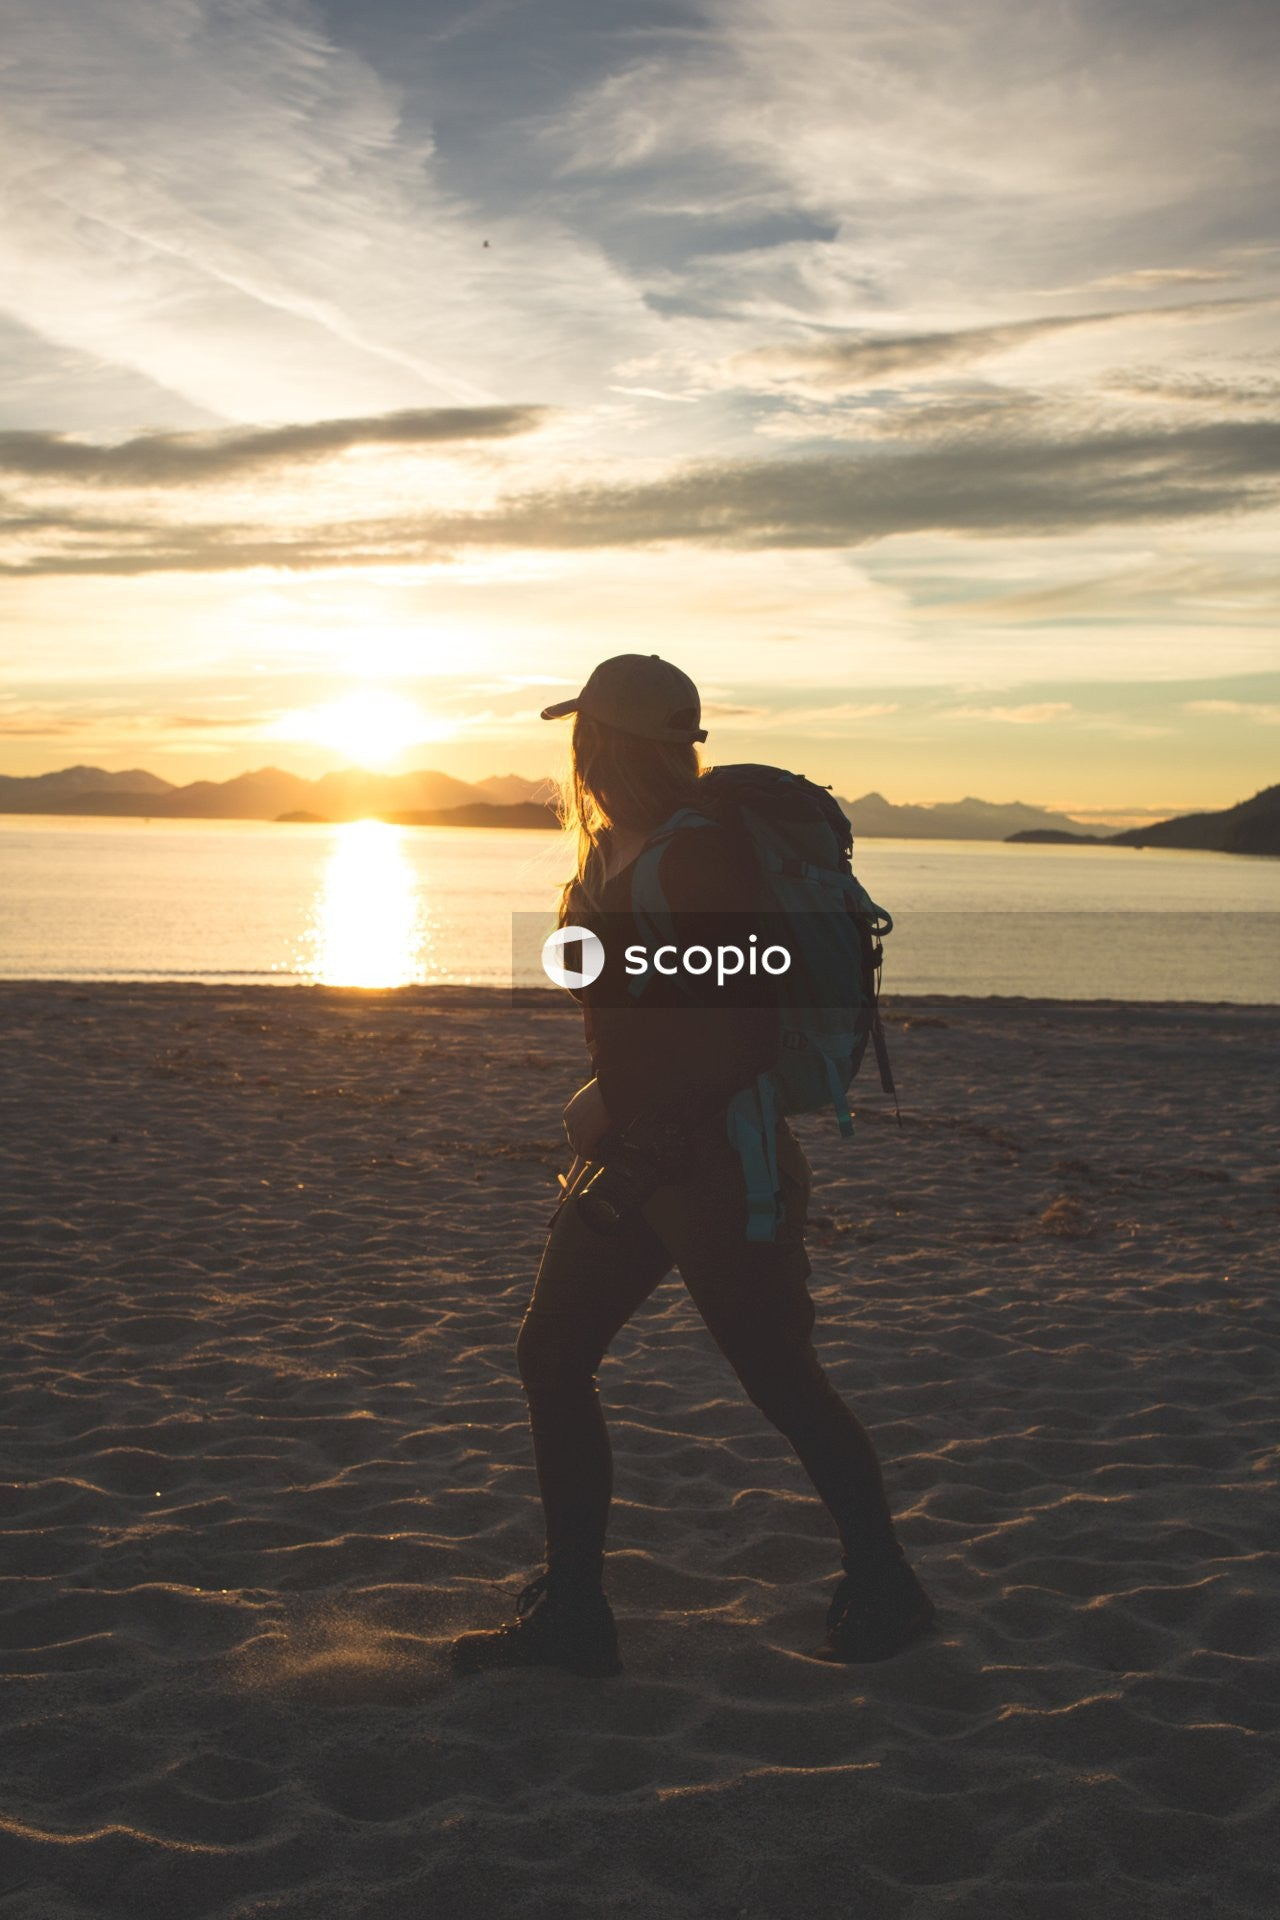 Man in black jacket and black pants standing on beach during sunset